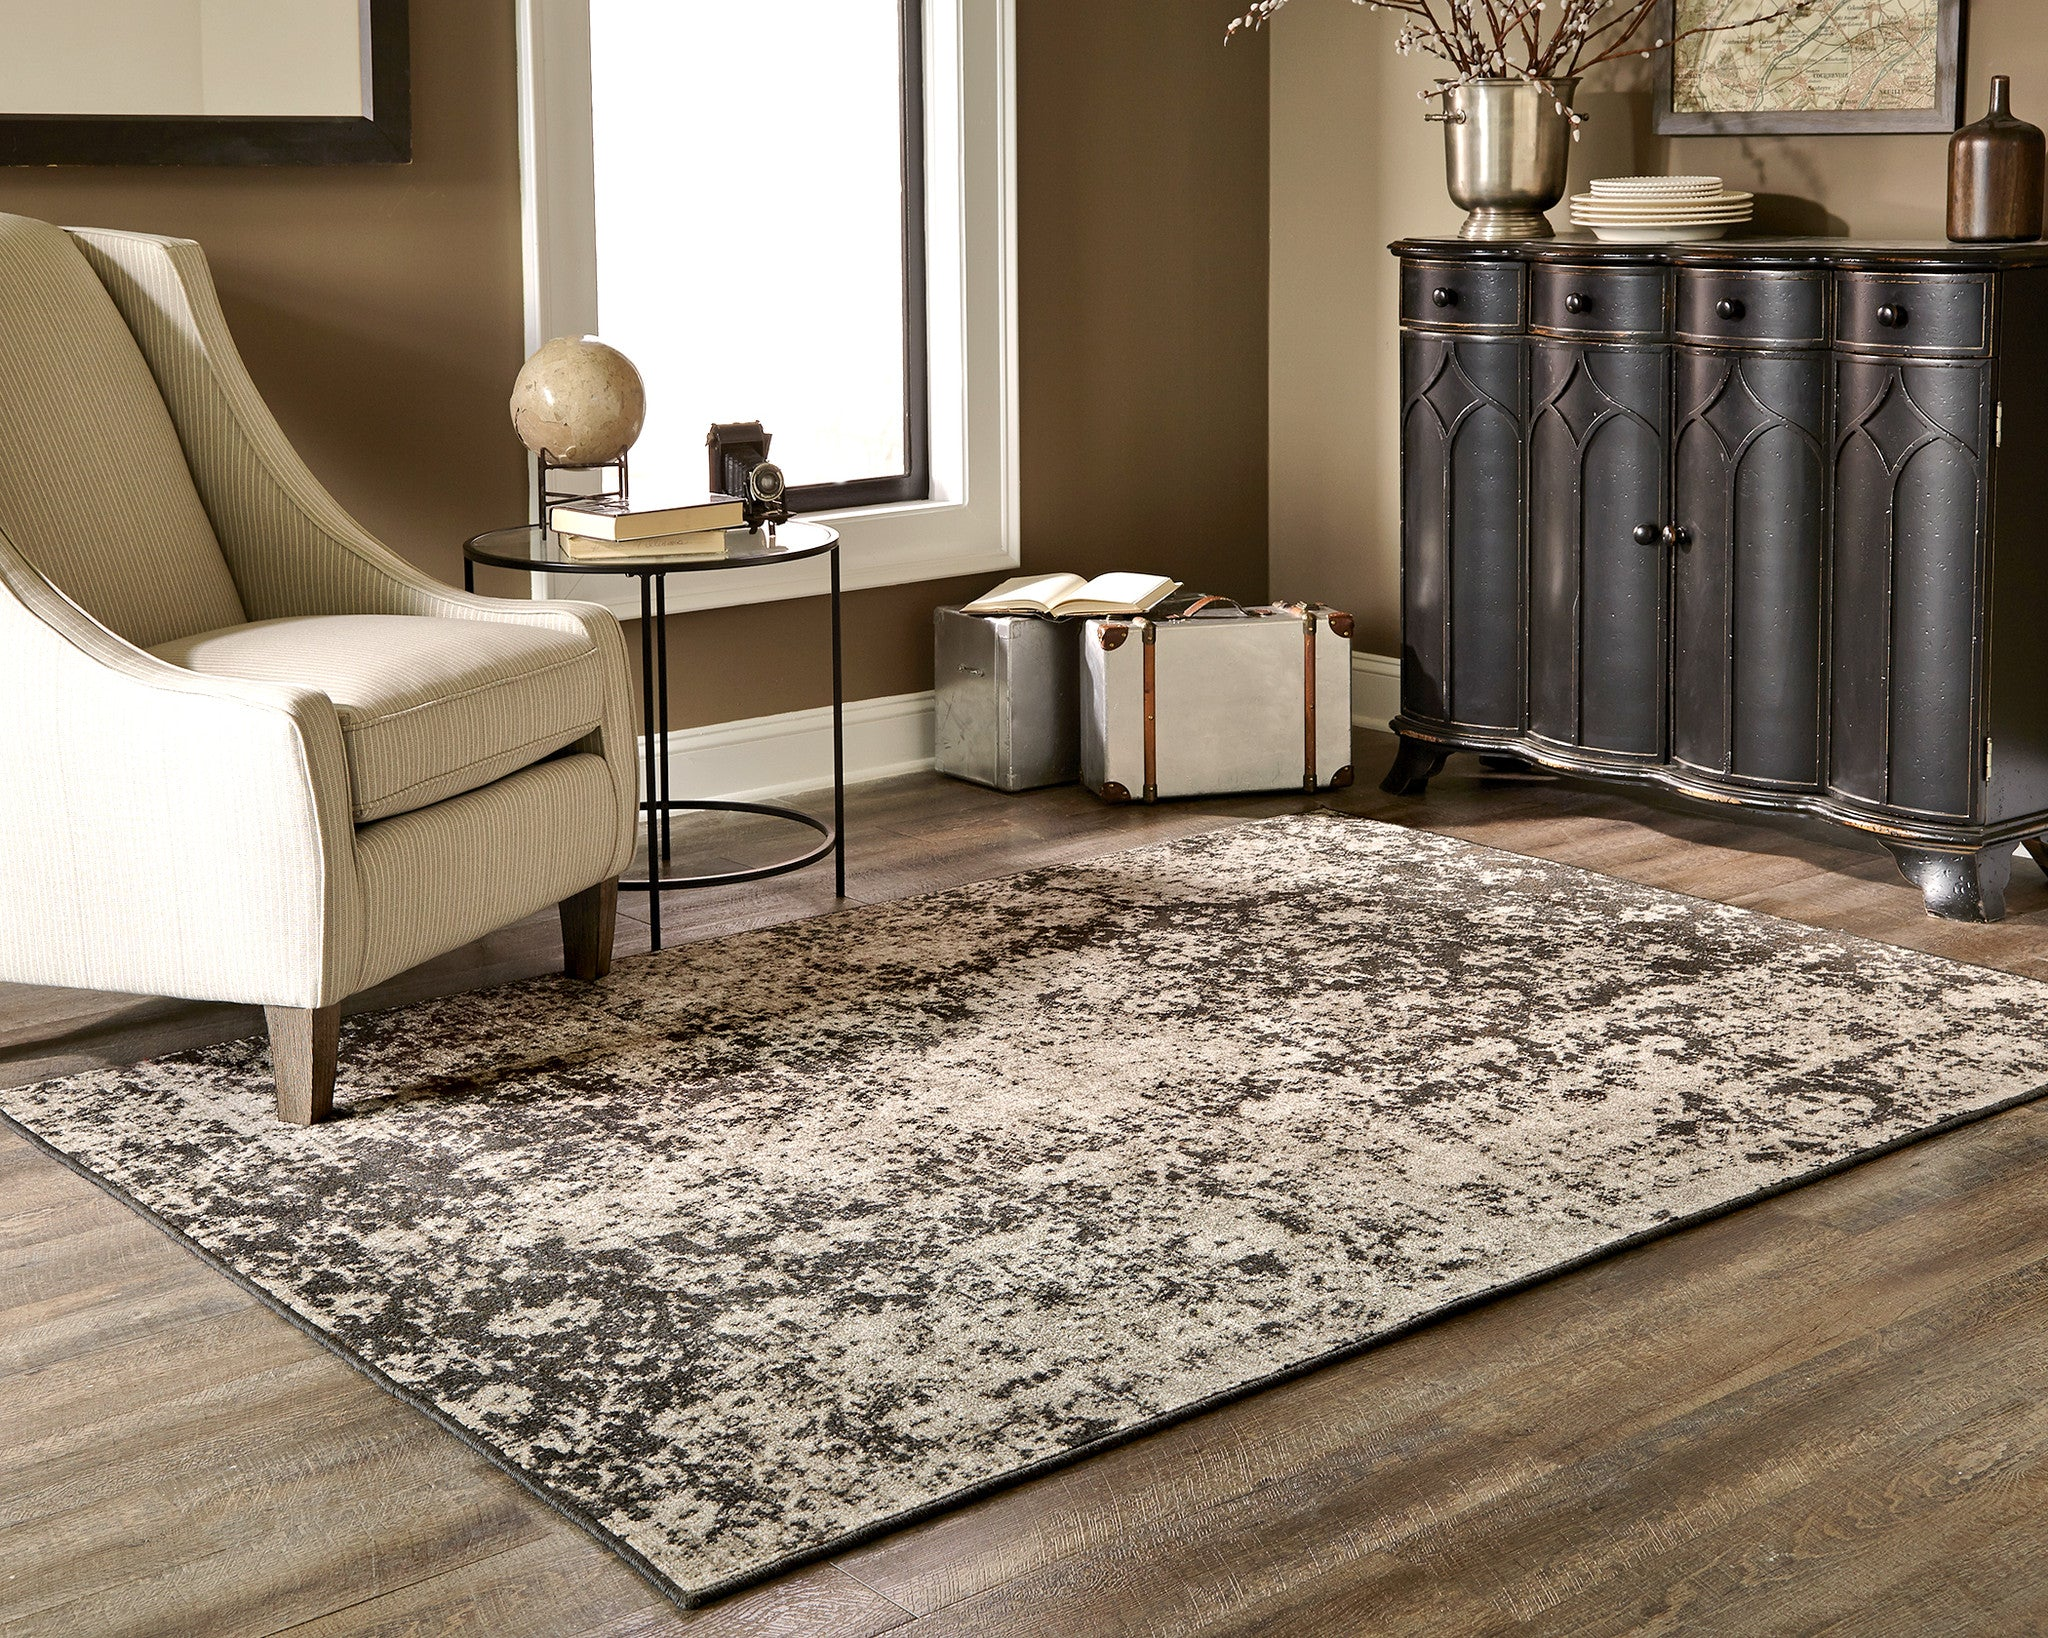 Black And Gray Worn Overdyed Style Rug